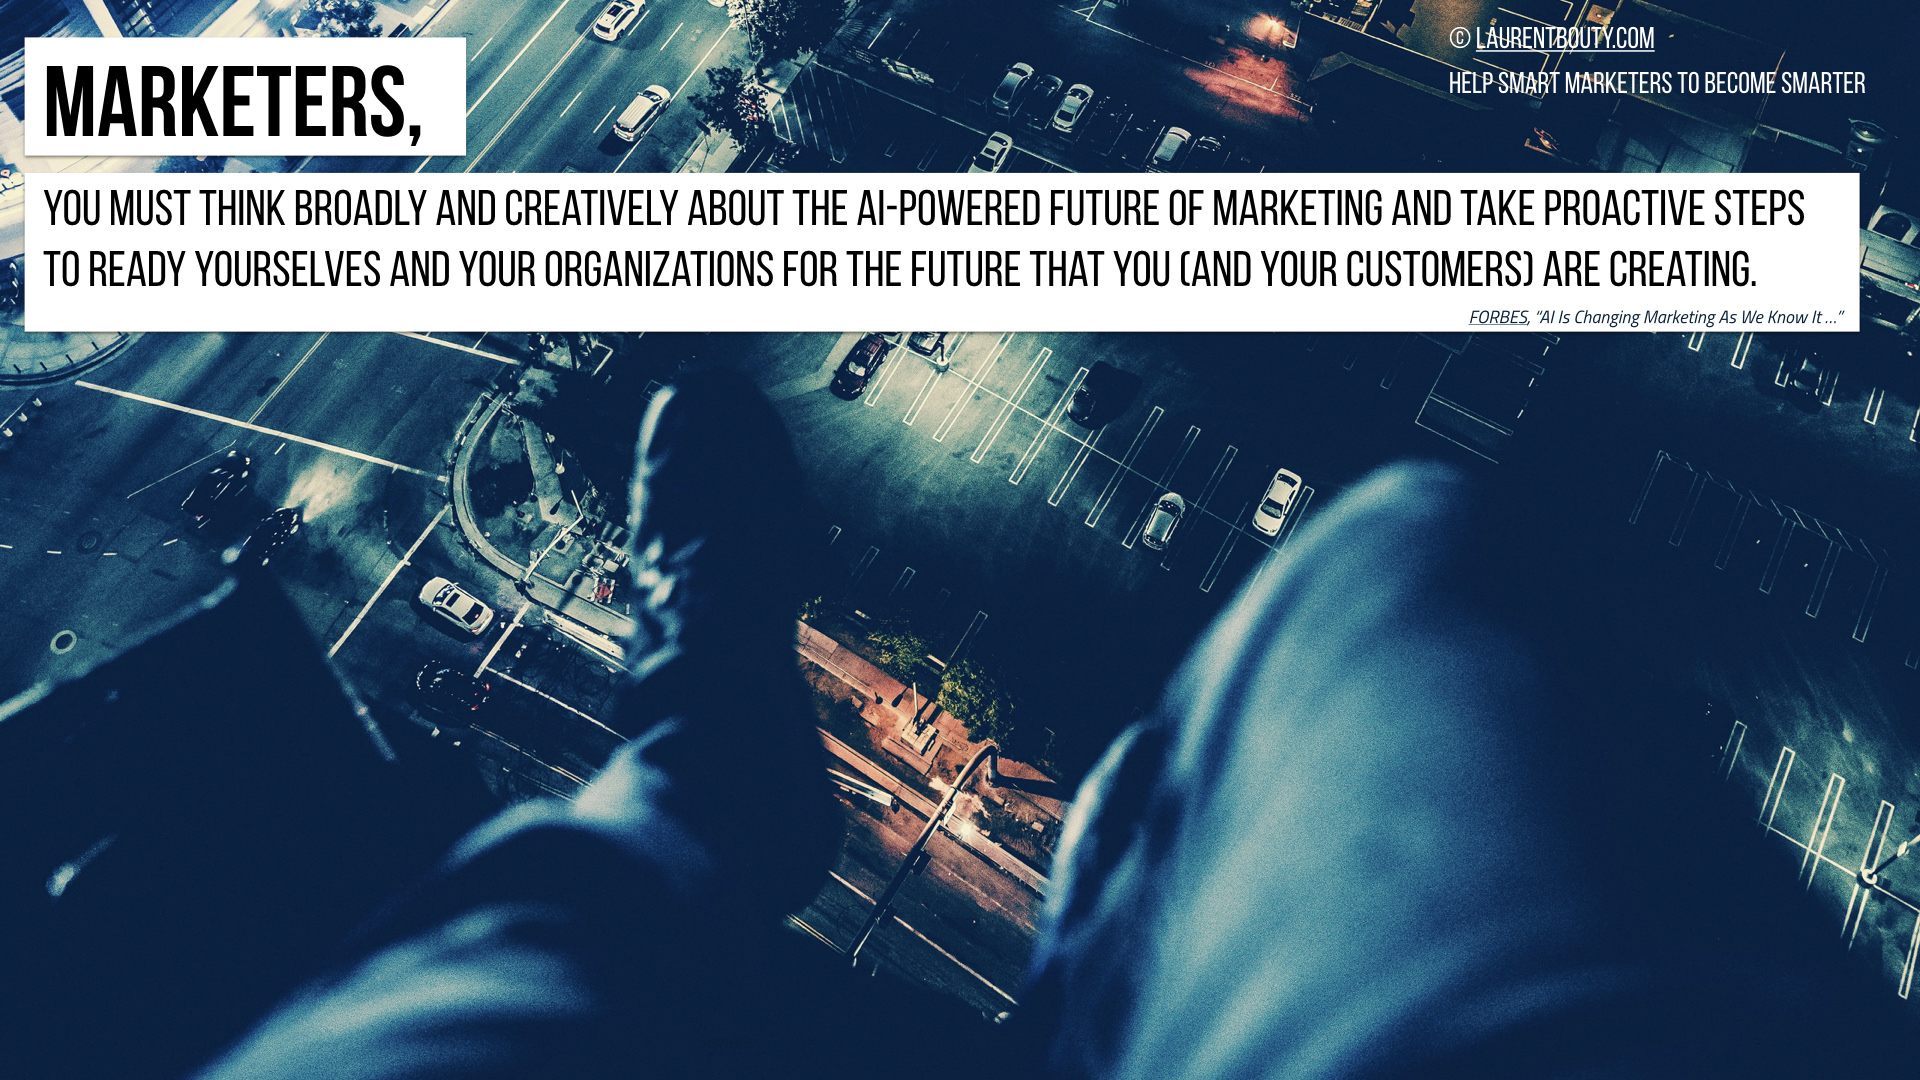 AI is changing Marketing